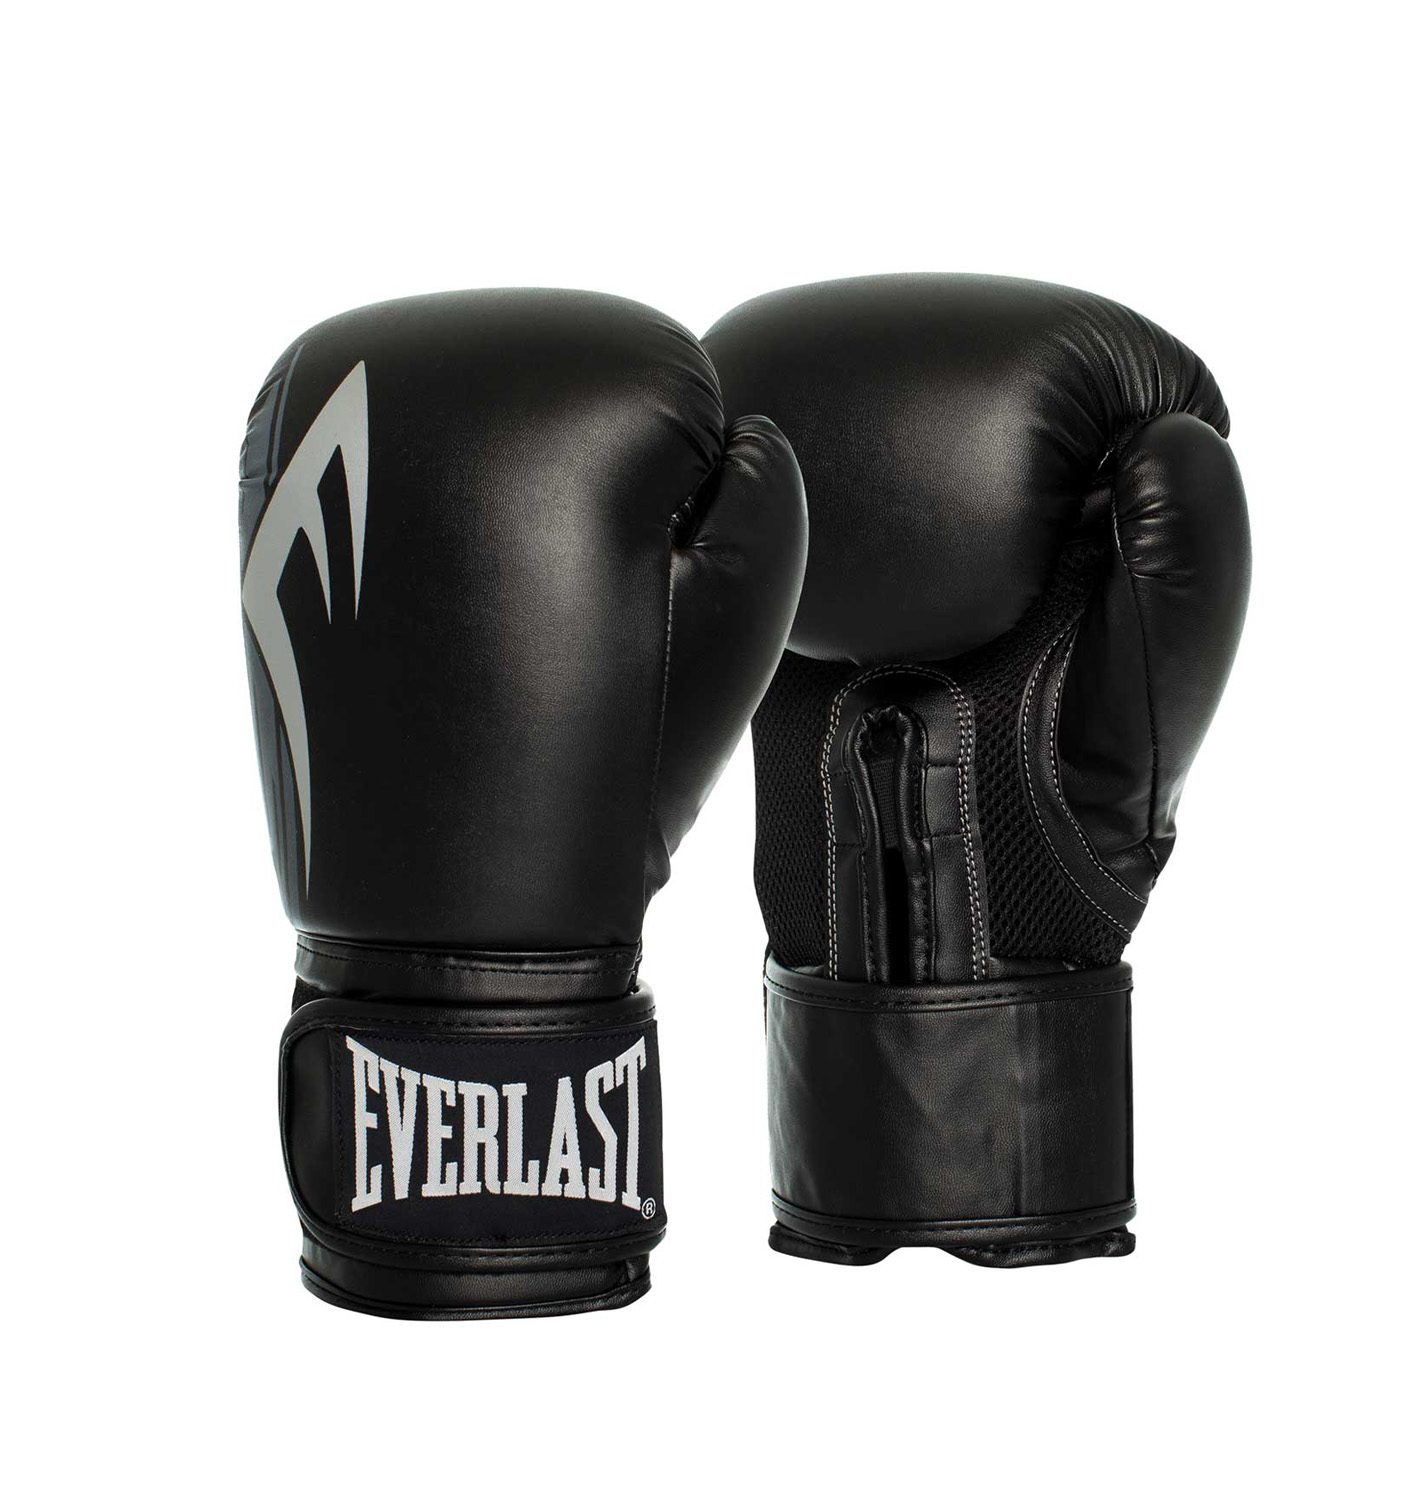 Pro Style Power Boxing Glove 8oz